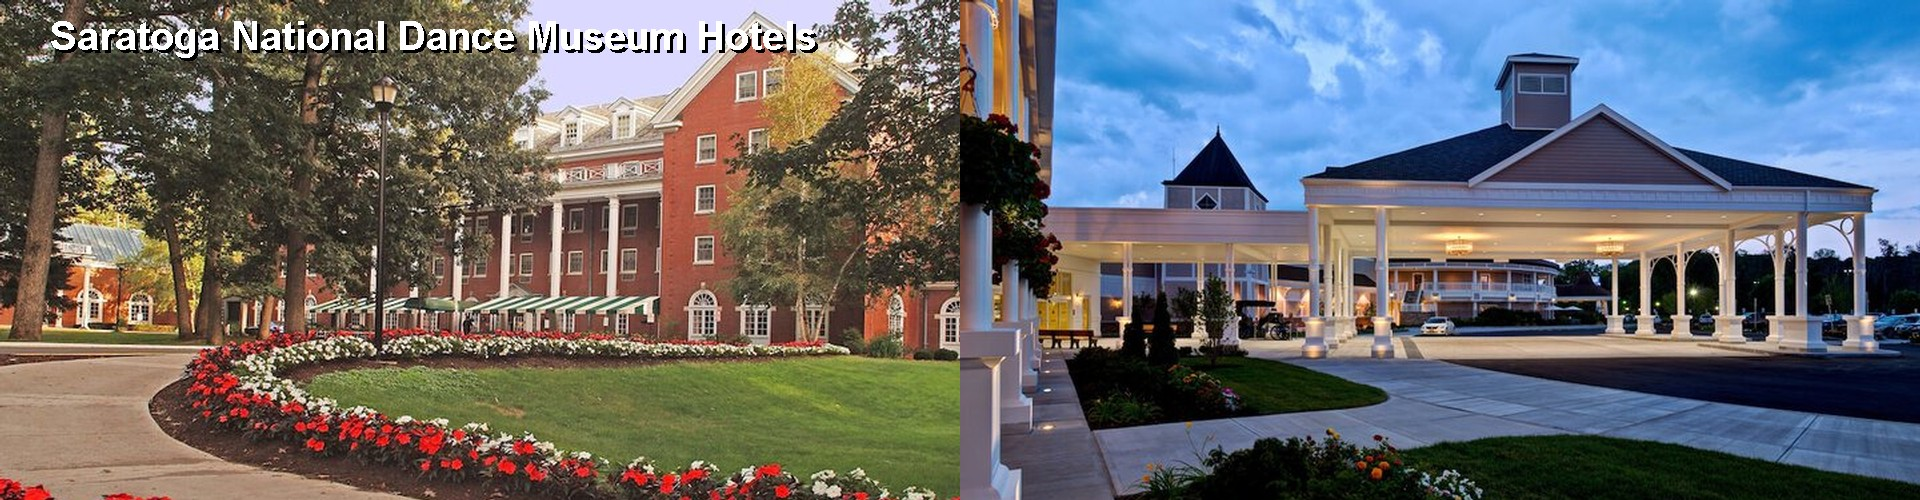 5 Best Hotels near Saratoga National Dance Museum